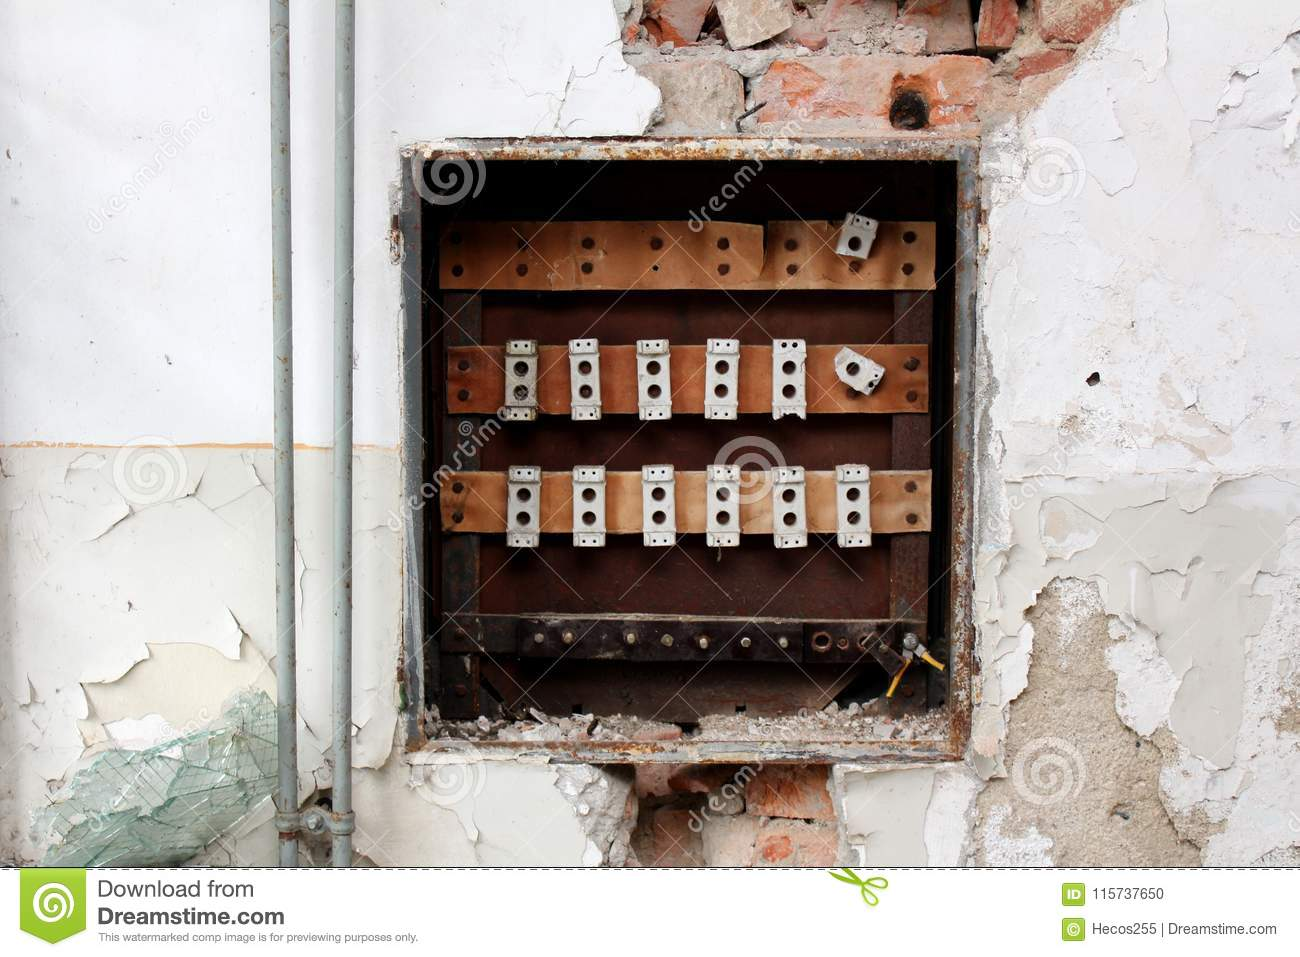 Download Destroyed Old Fuse Box Surrounded With Crumbling Wall Stock Photo  - Image of destroyed,